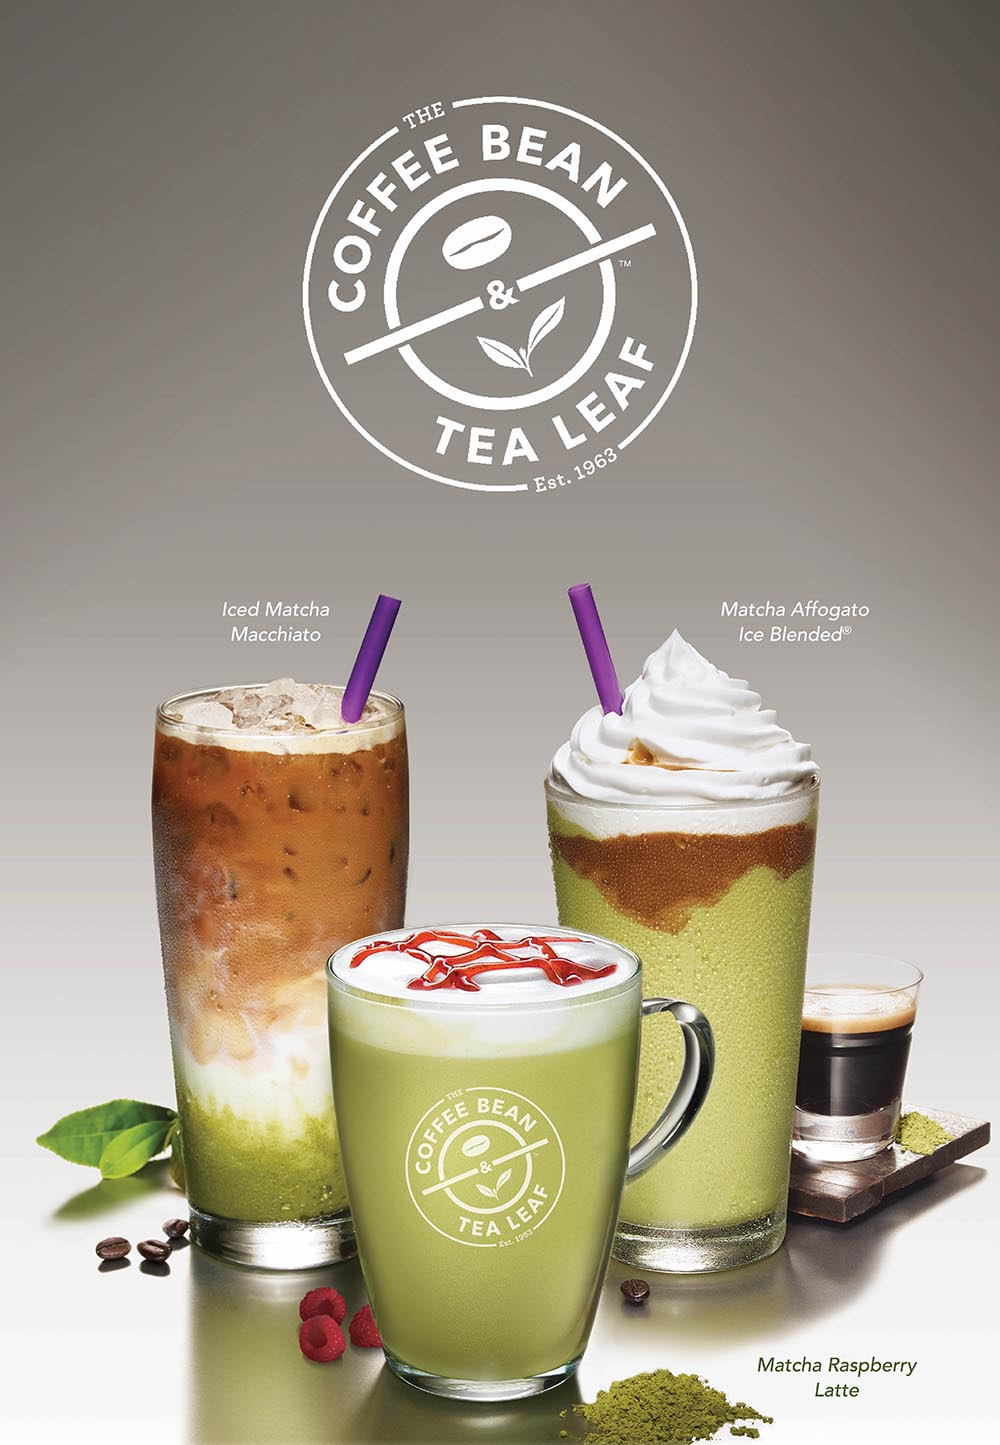 The Coffee Bean Tea Leaf Launches Limited Edition Matcha Drinks Cook Magazine